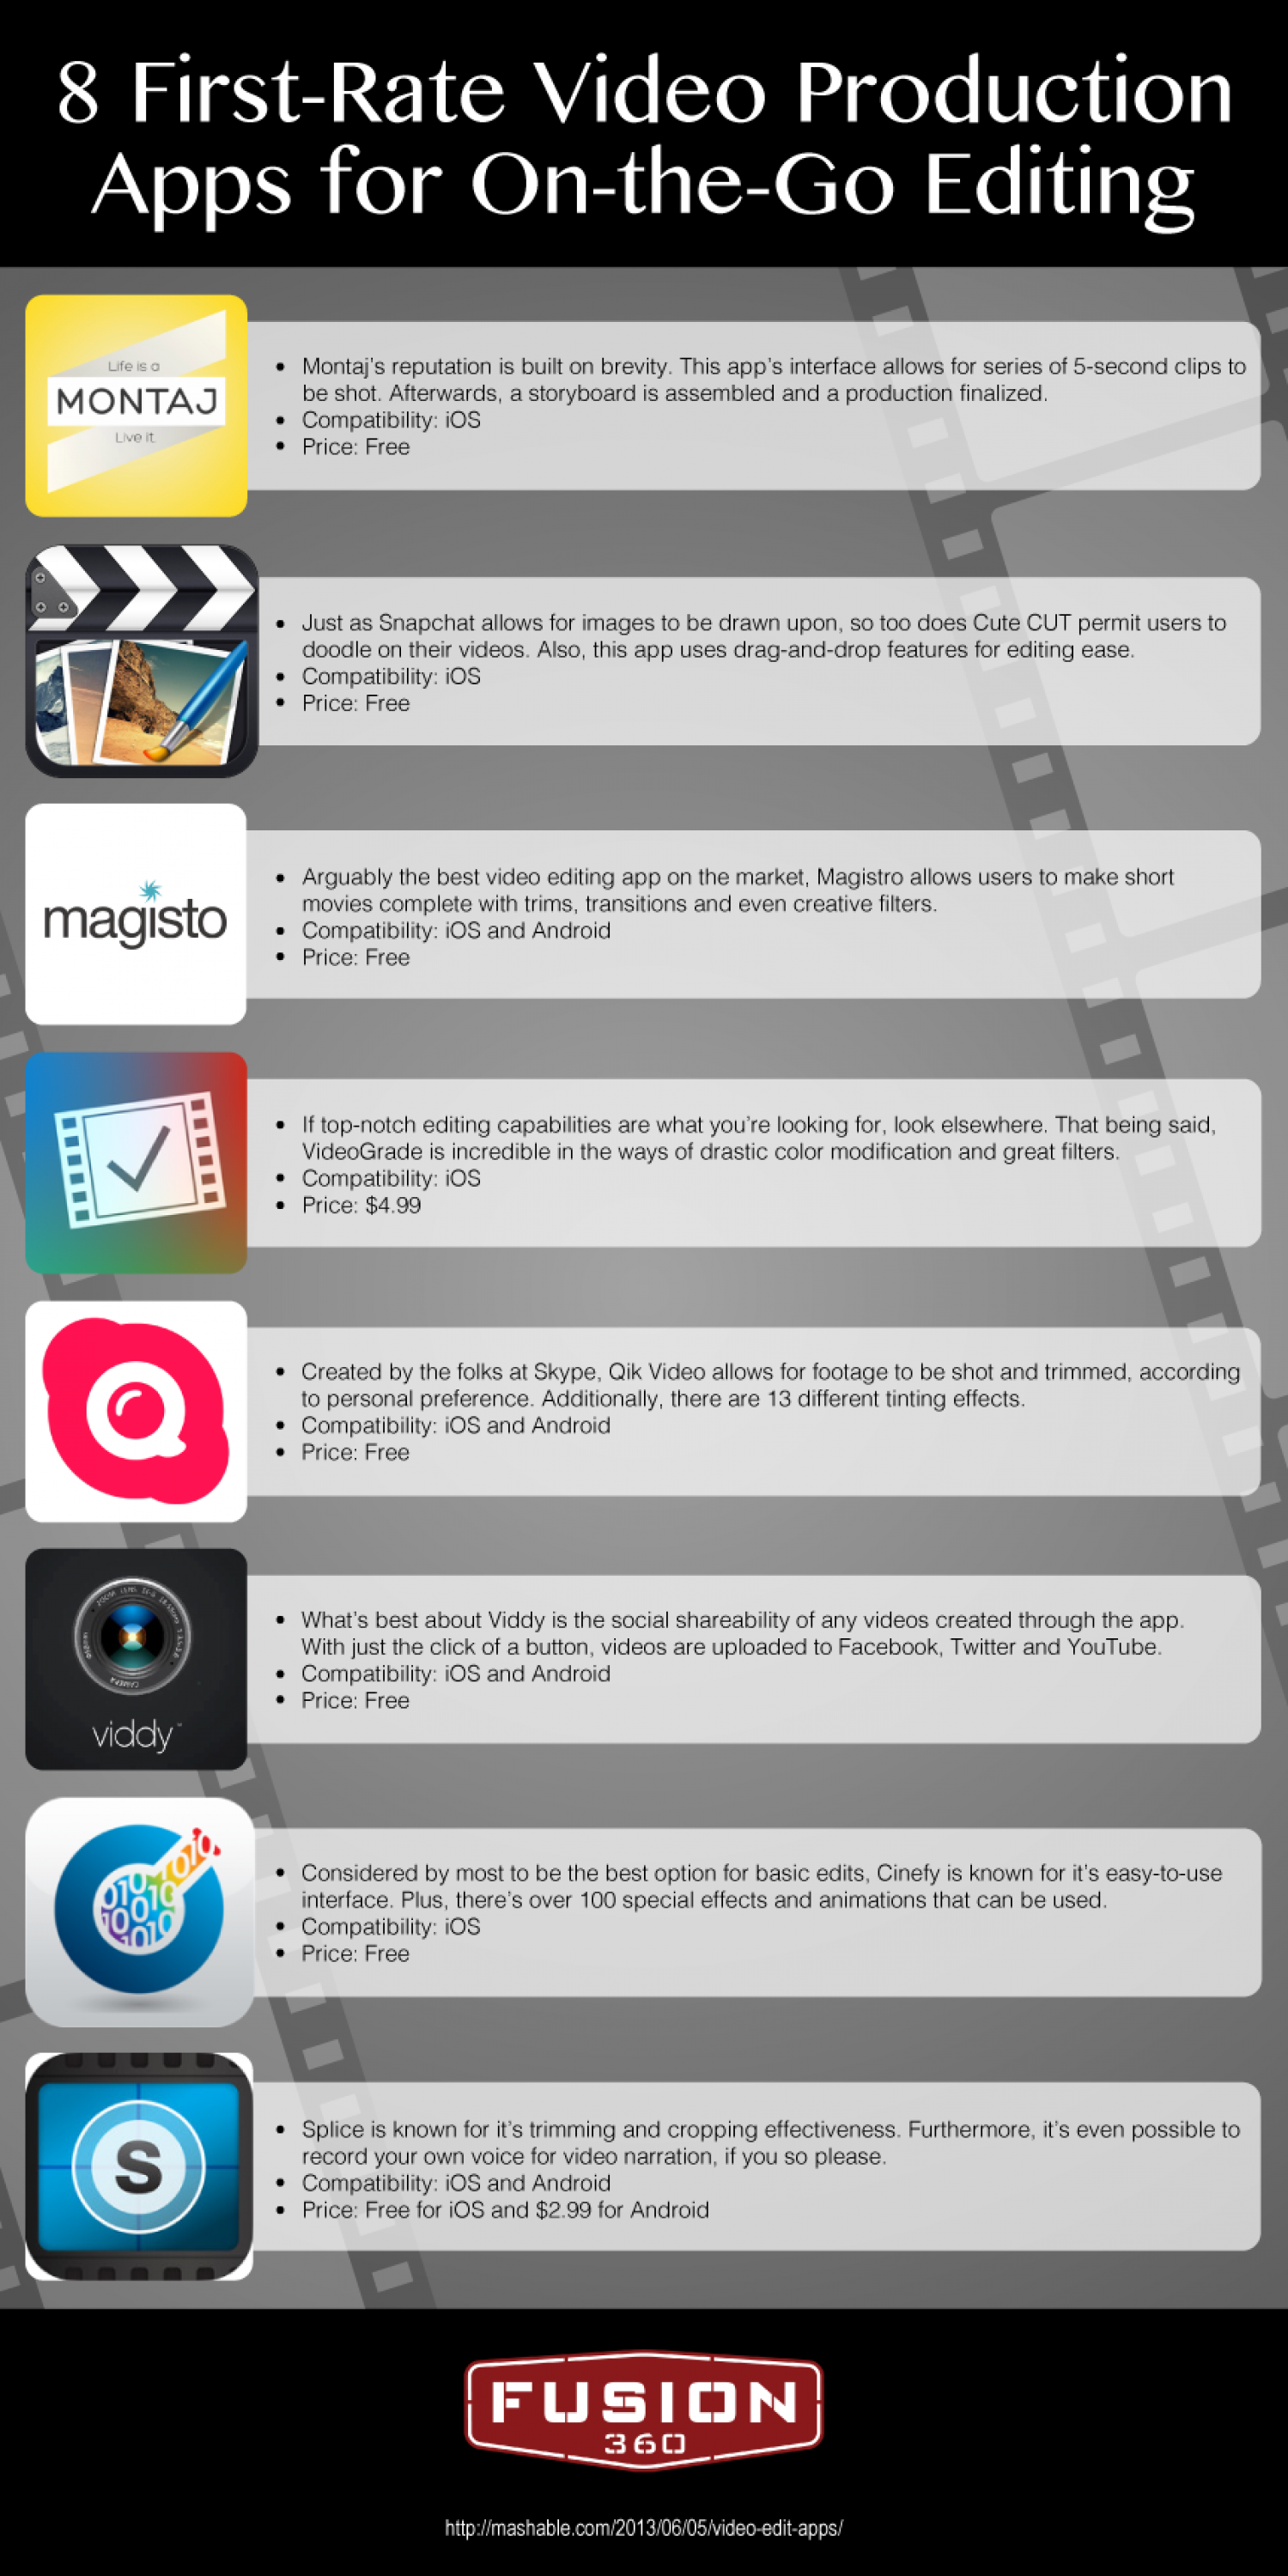 8 First-Rate Video Production Apps for On-the-Go Editing Infographic